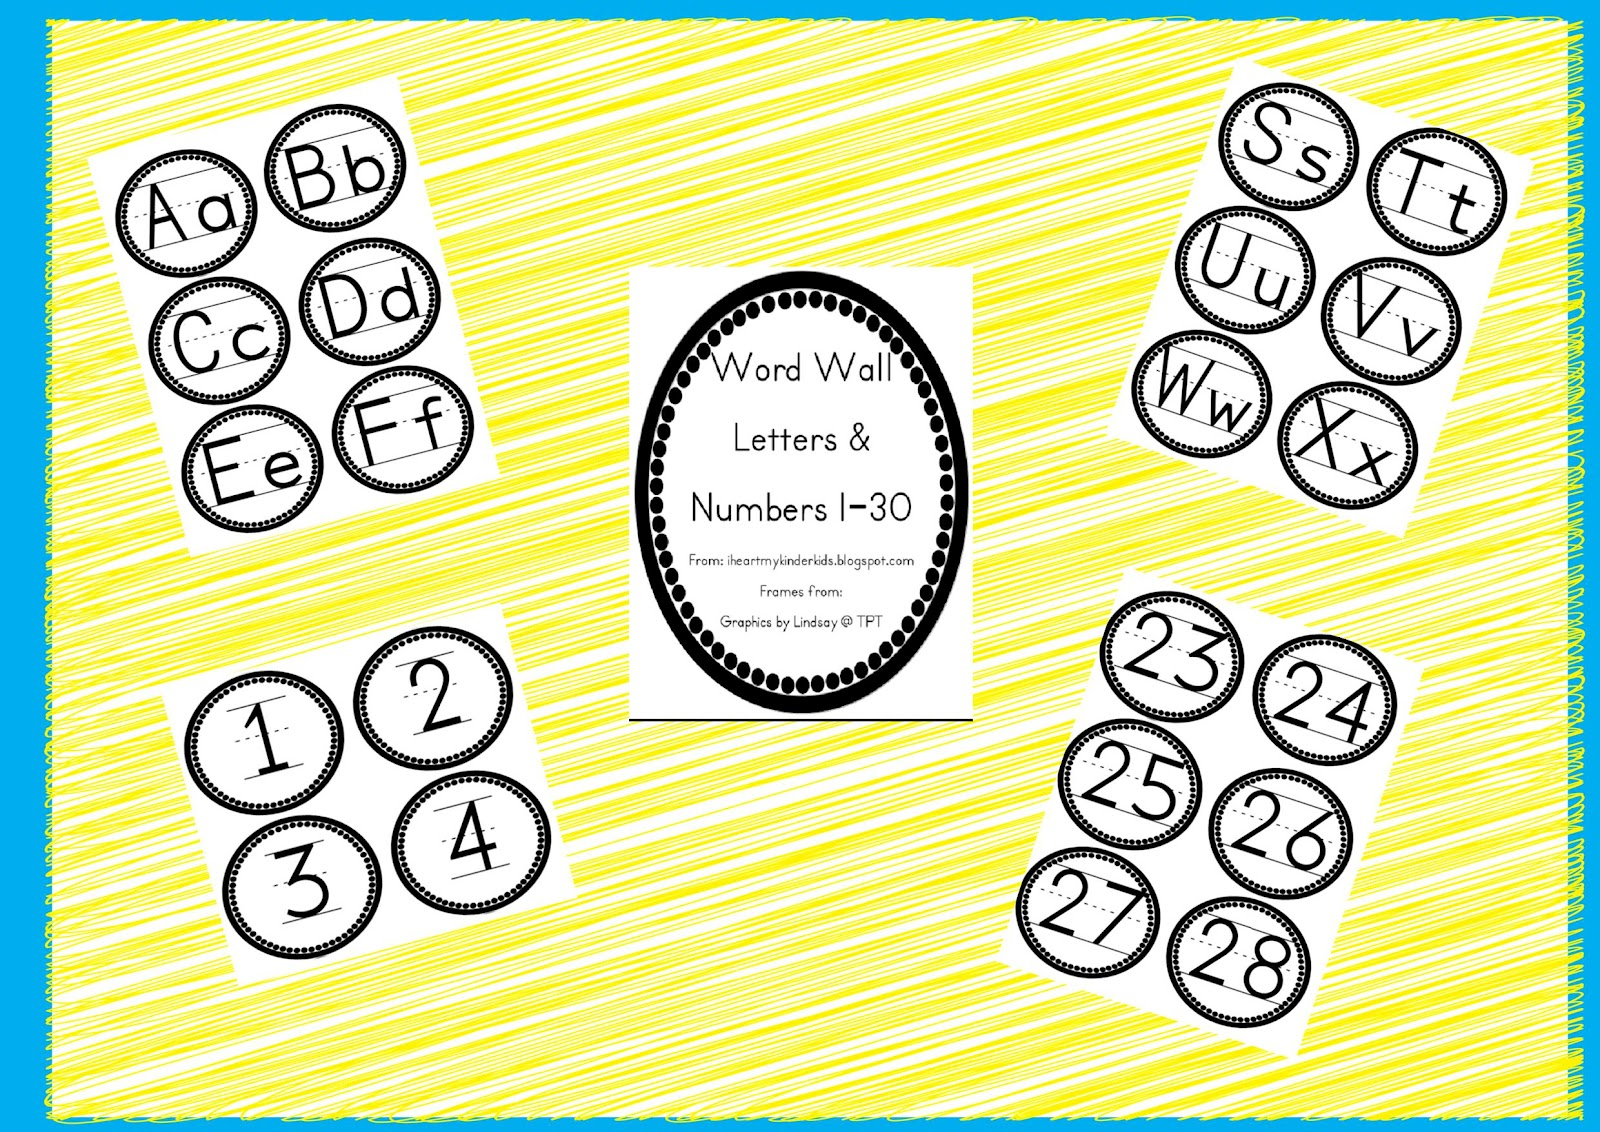 Word Wall Letters Fascinating Classroom Freebies Too Polka Dot Word Wall Letters And Numbers 130 Design Ideas